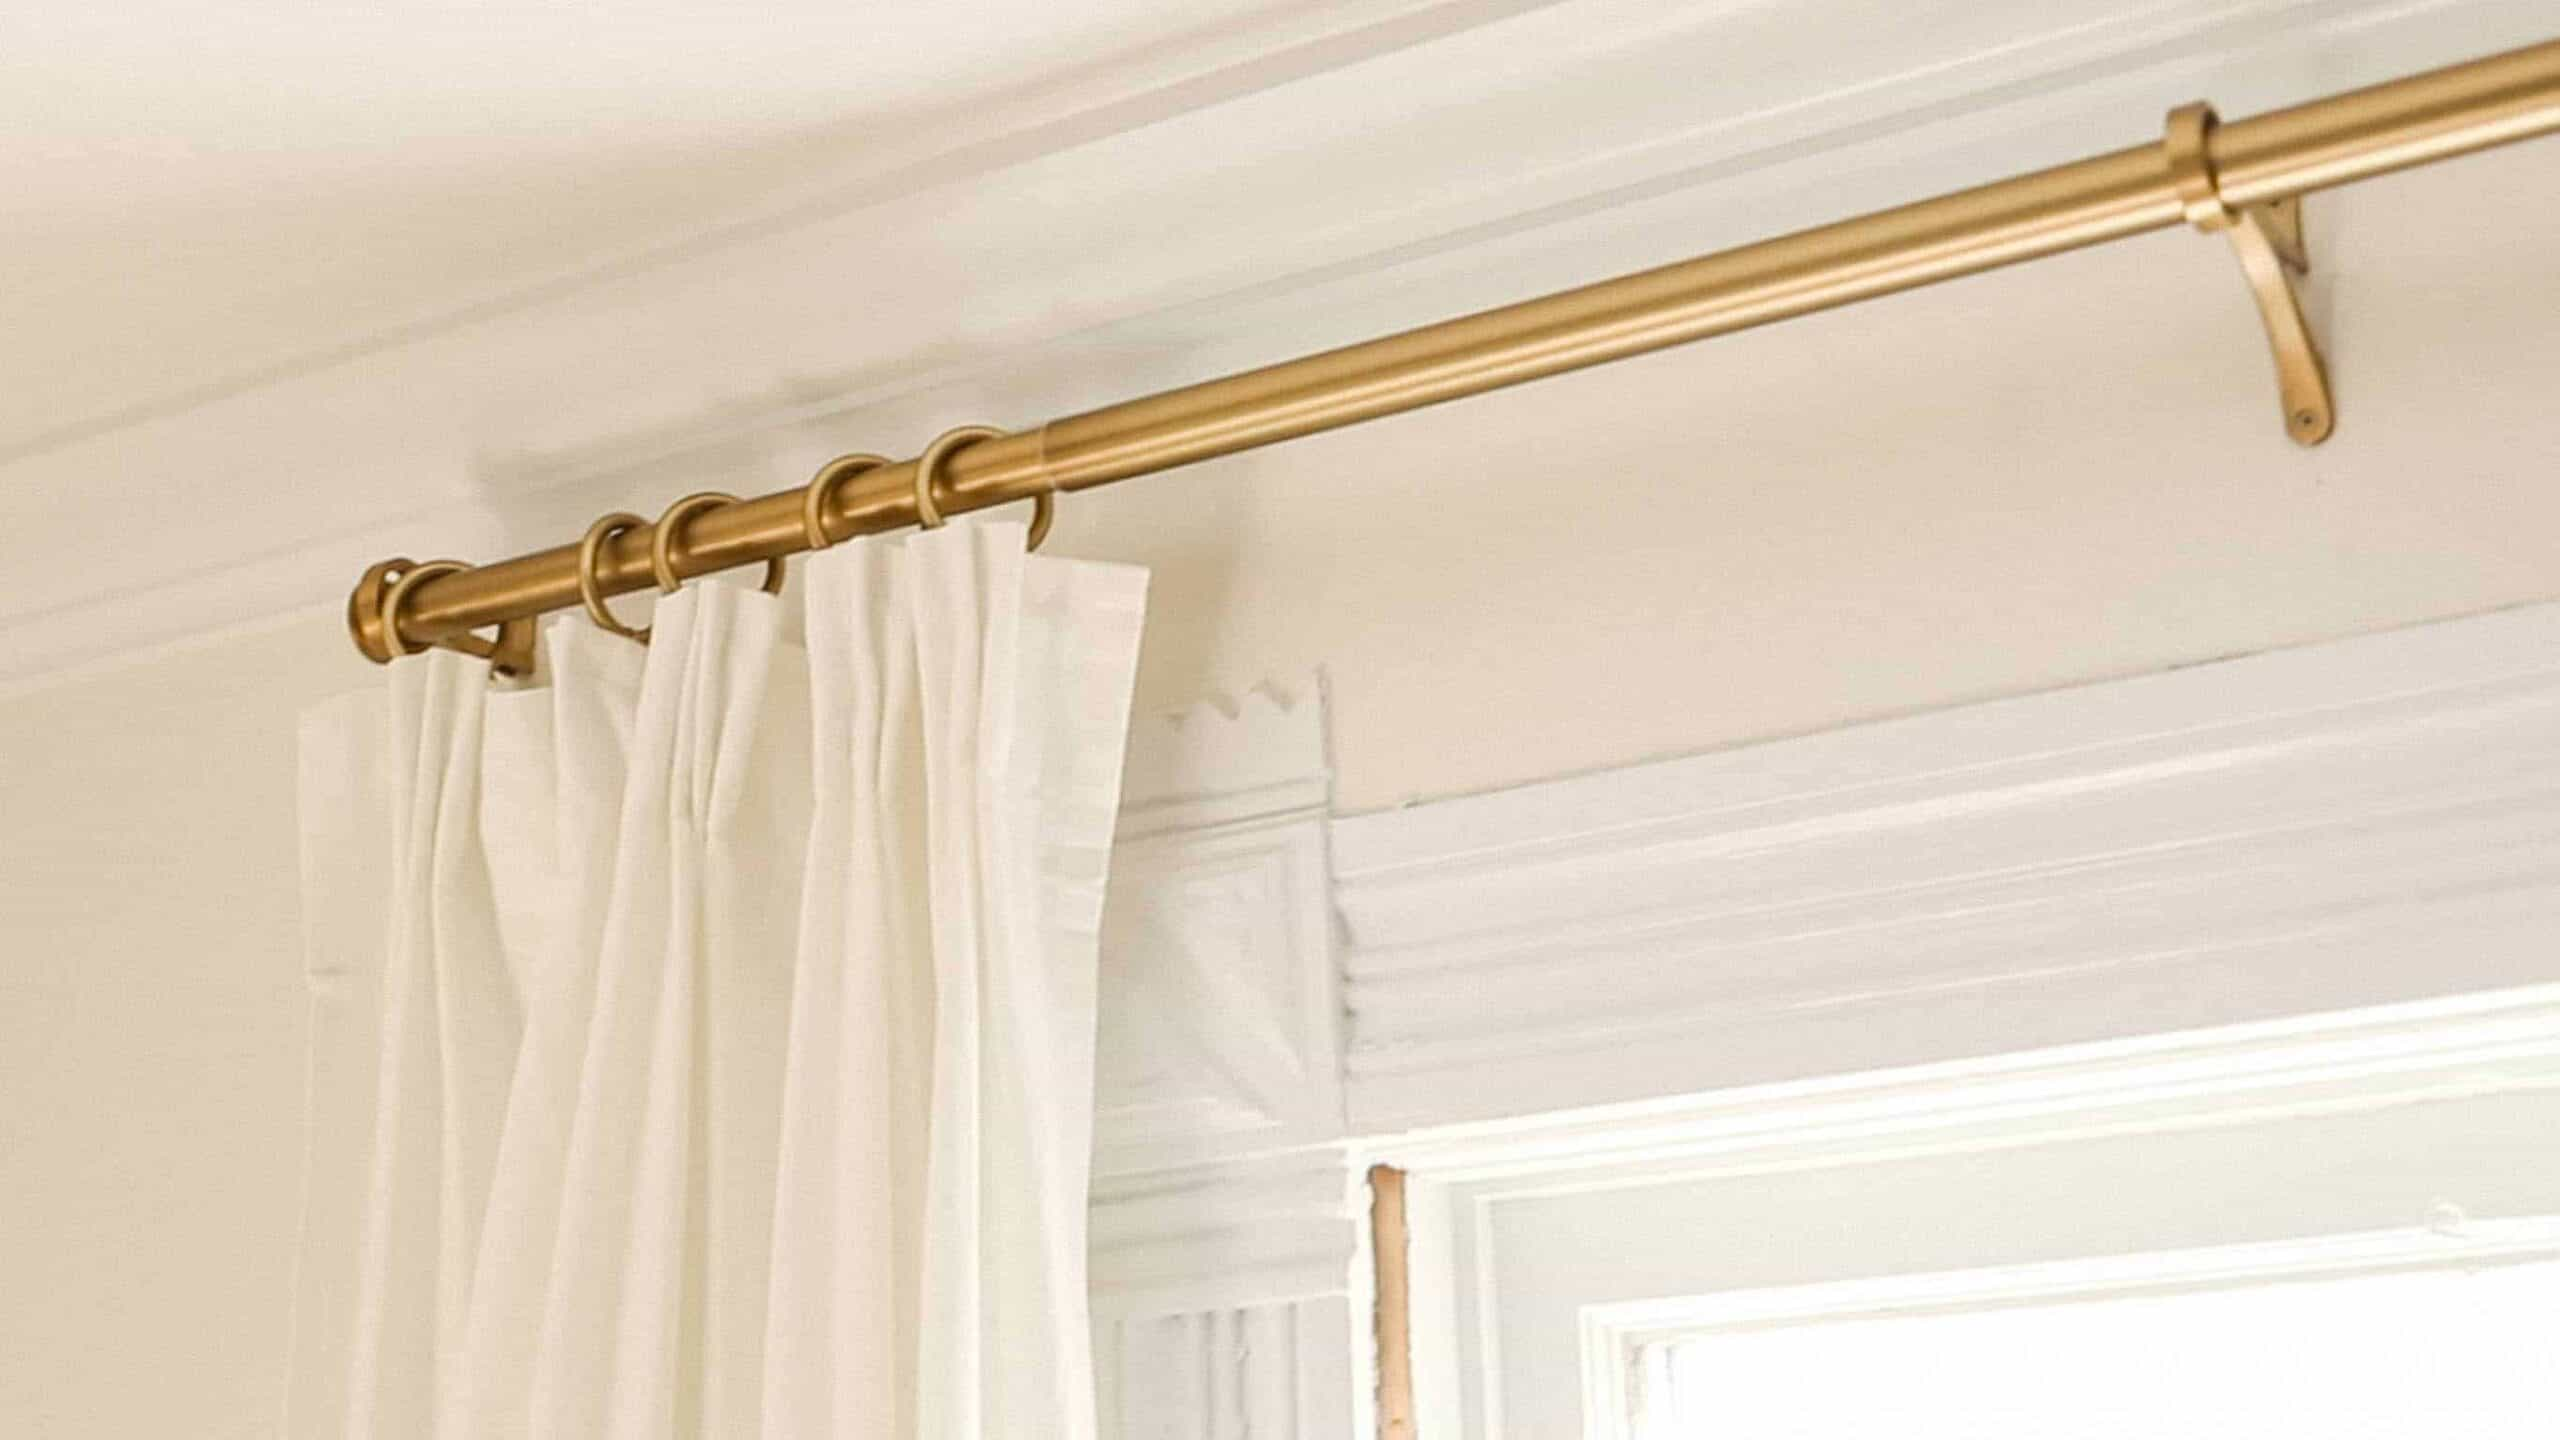 ikea curtain hack using ikea rivta curtains with pleats hung with brass curtain clips on a brass pole